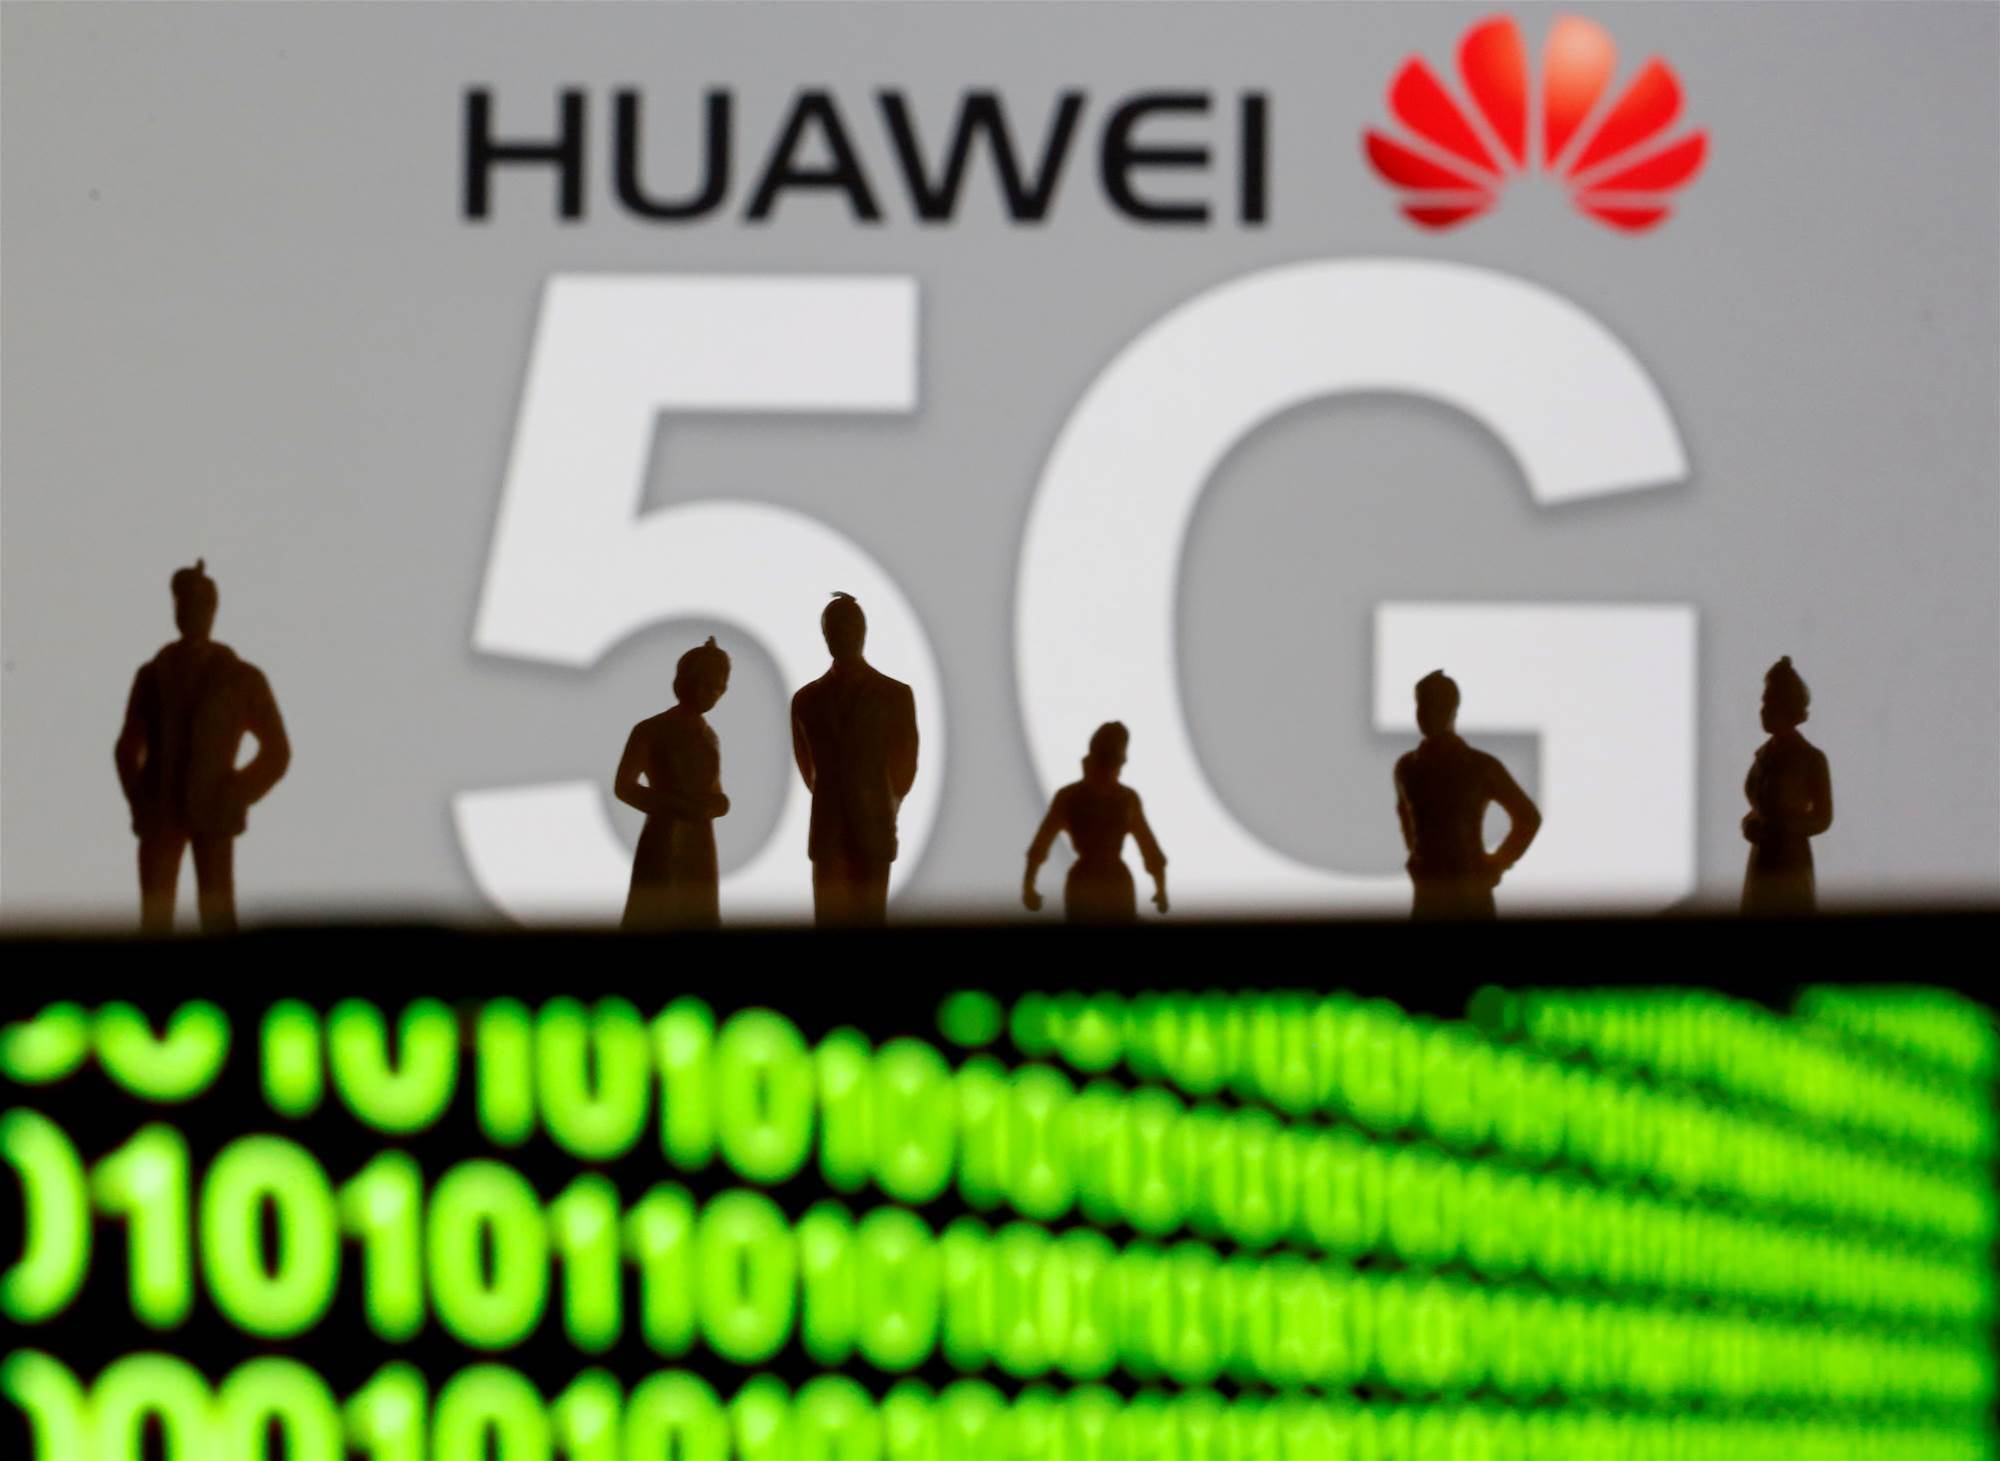 Huawei says its equipment as secure as any, pans US campaign